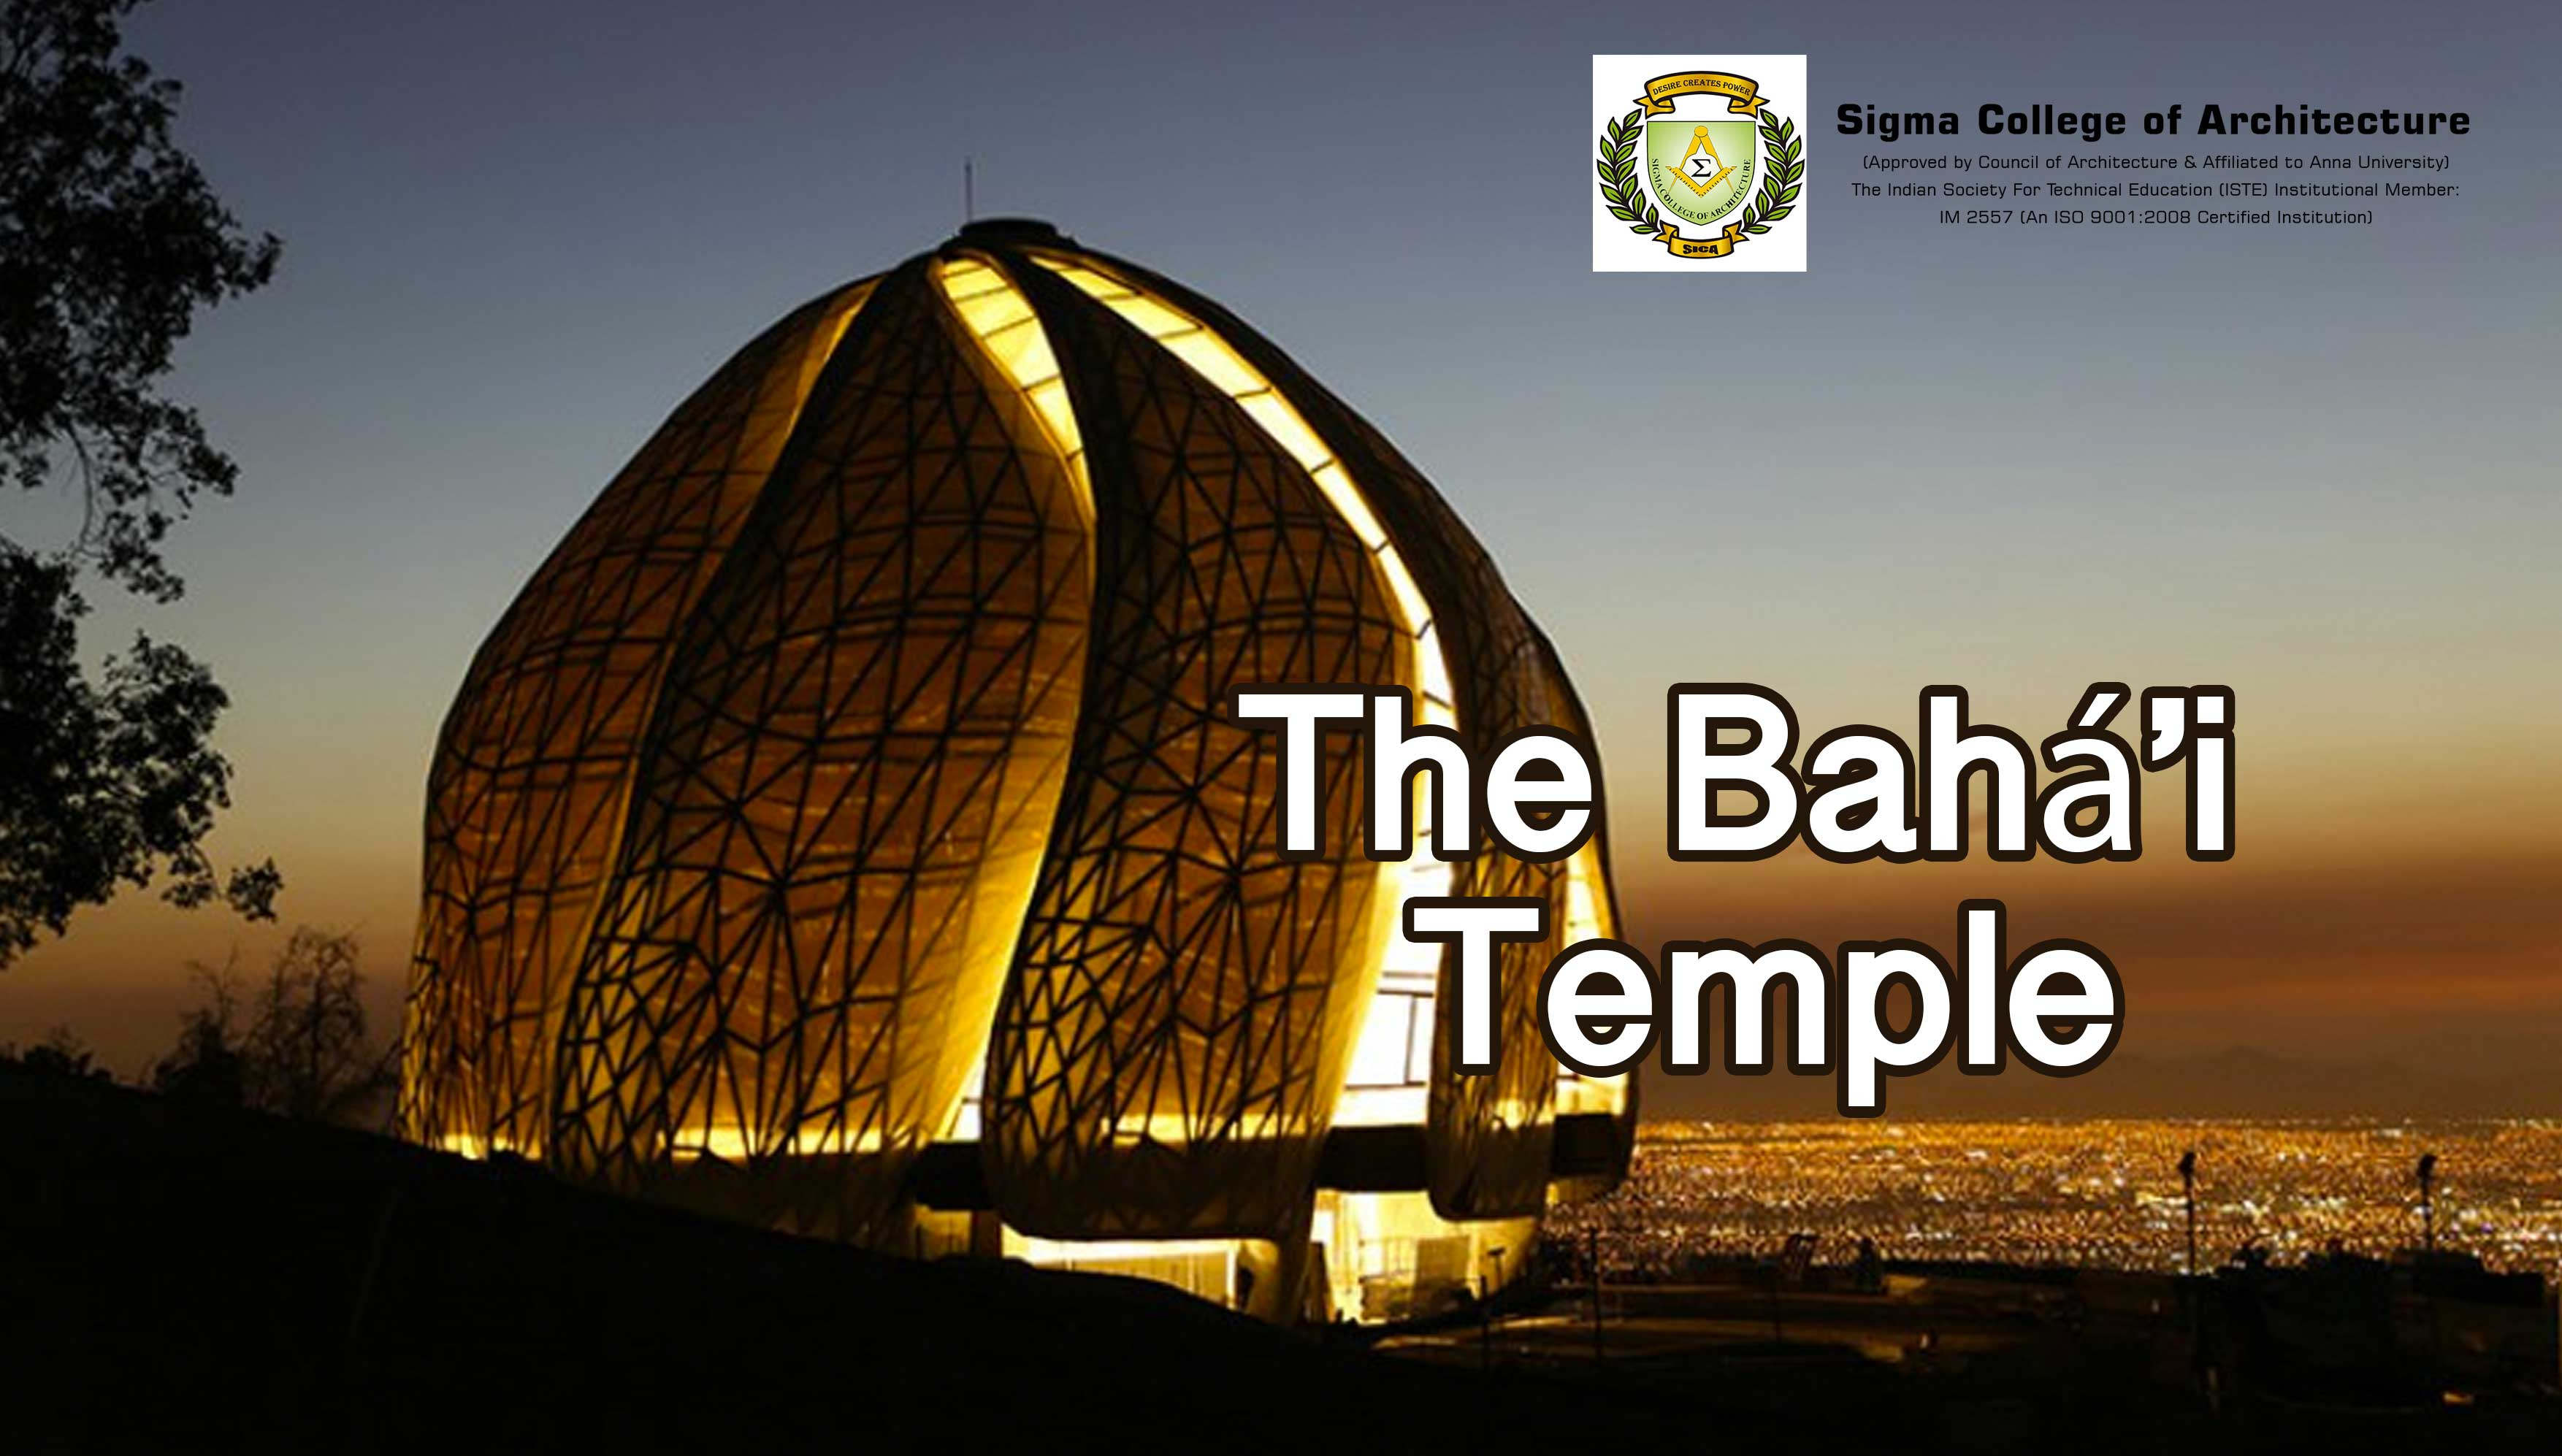 The Bahá'i Temple